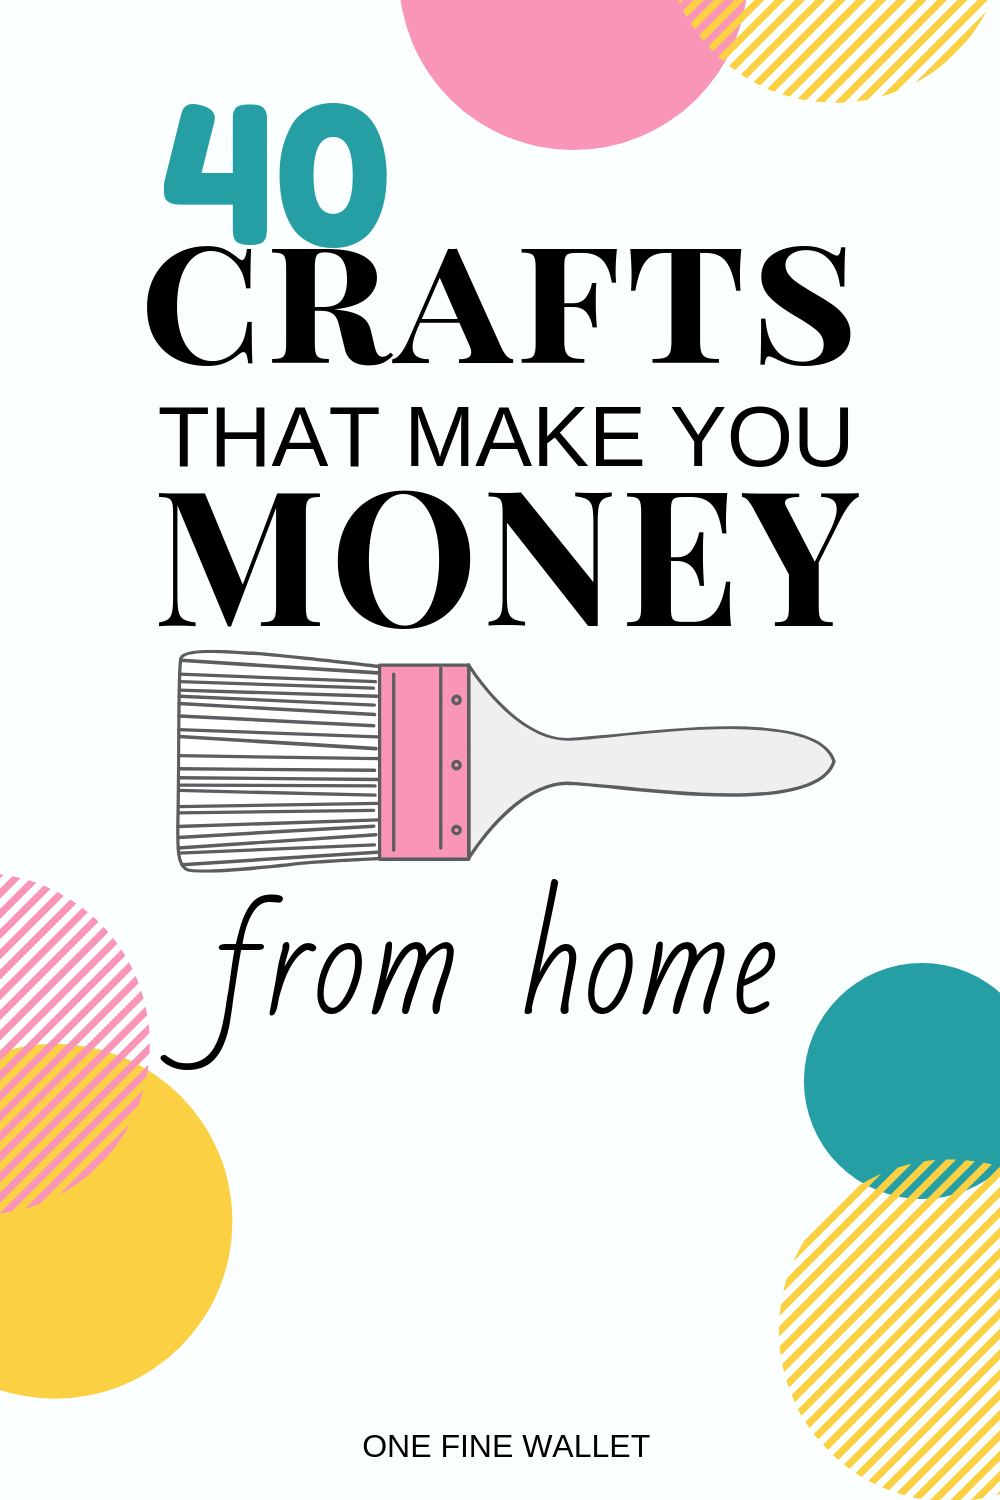 Crafts That Make Money 40 Hot Crafts To Sell 2020 One Fine Wallet Money Making Crafts Easy Crafts To Make Crafts To Make And Sell